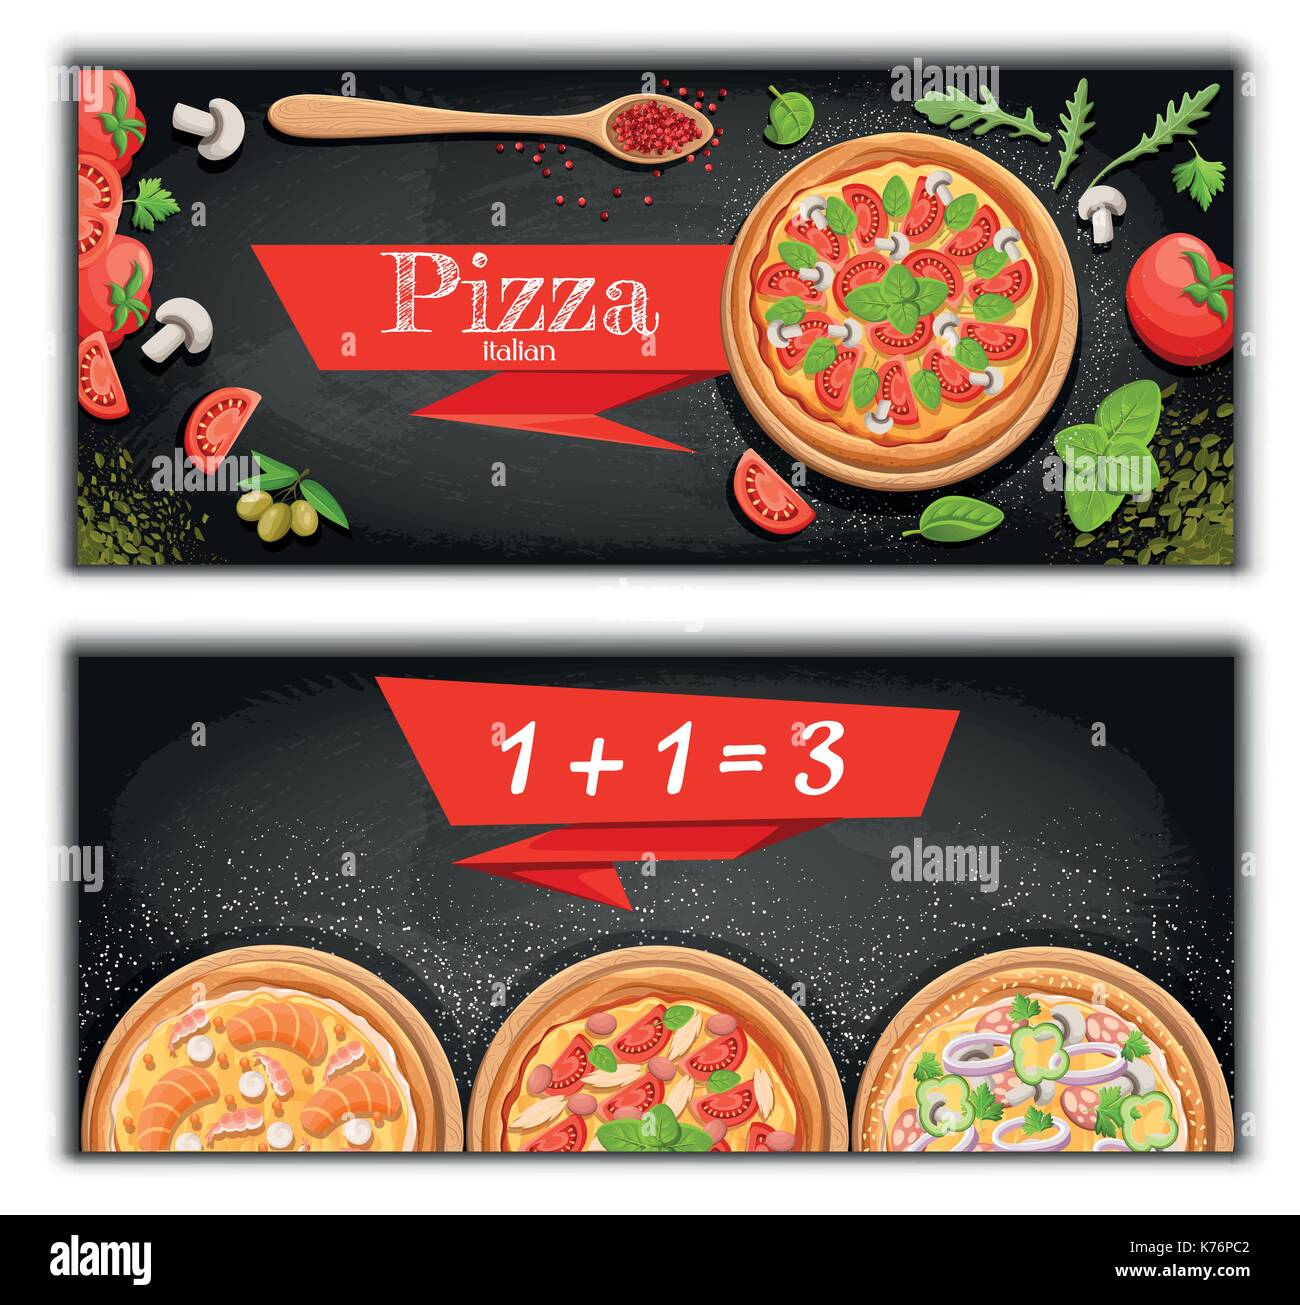 Pizza Menu Chalkboard Cartoon Background With Fresh Ingredients Vector Illustration Pizzeria Flyer Two Horizontal Banners Ingr